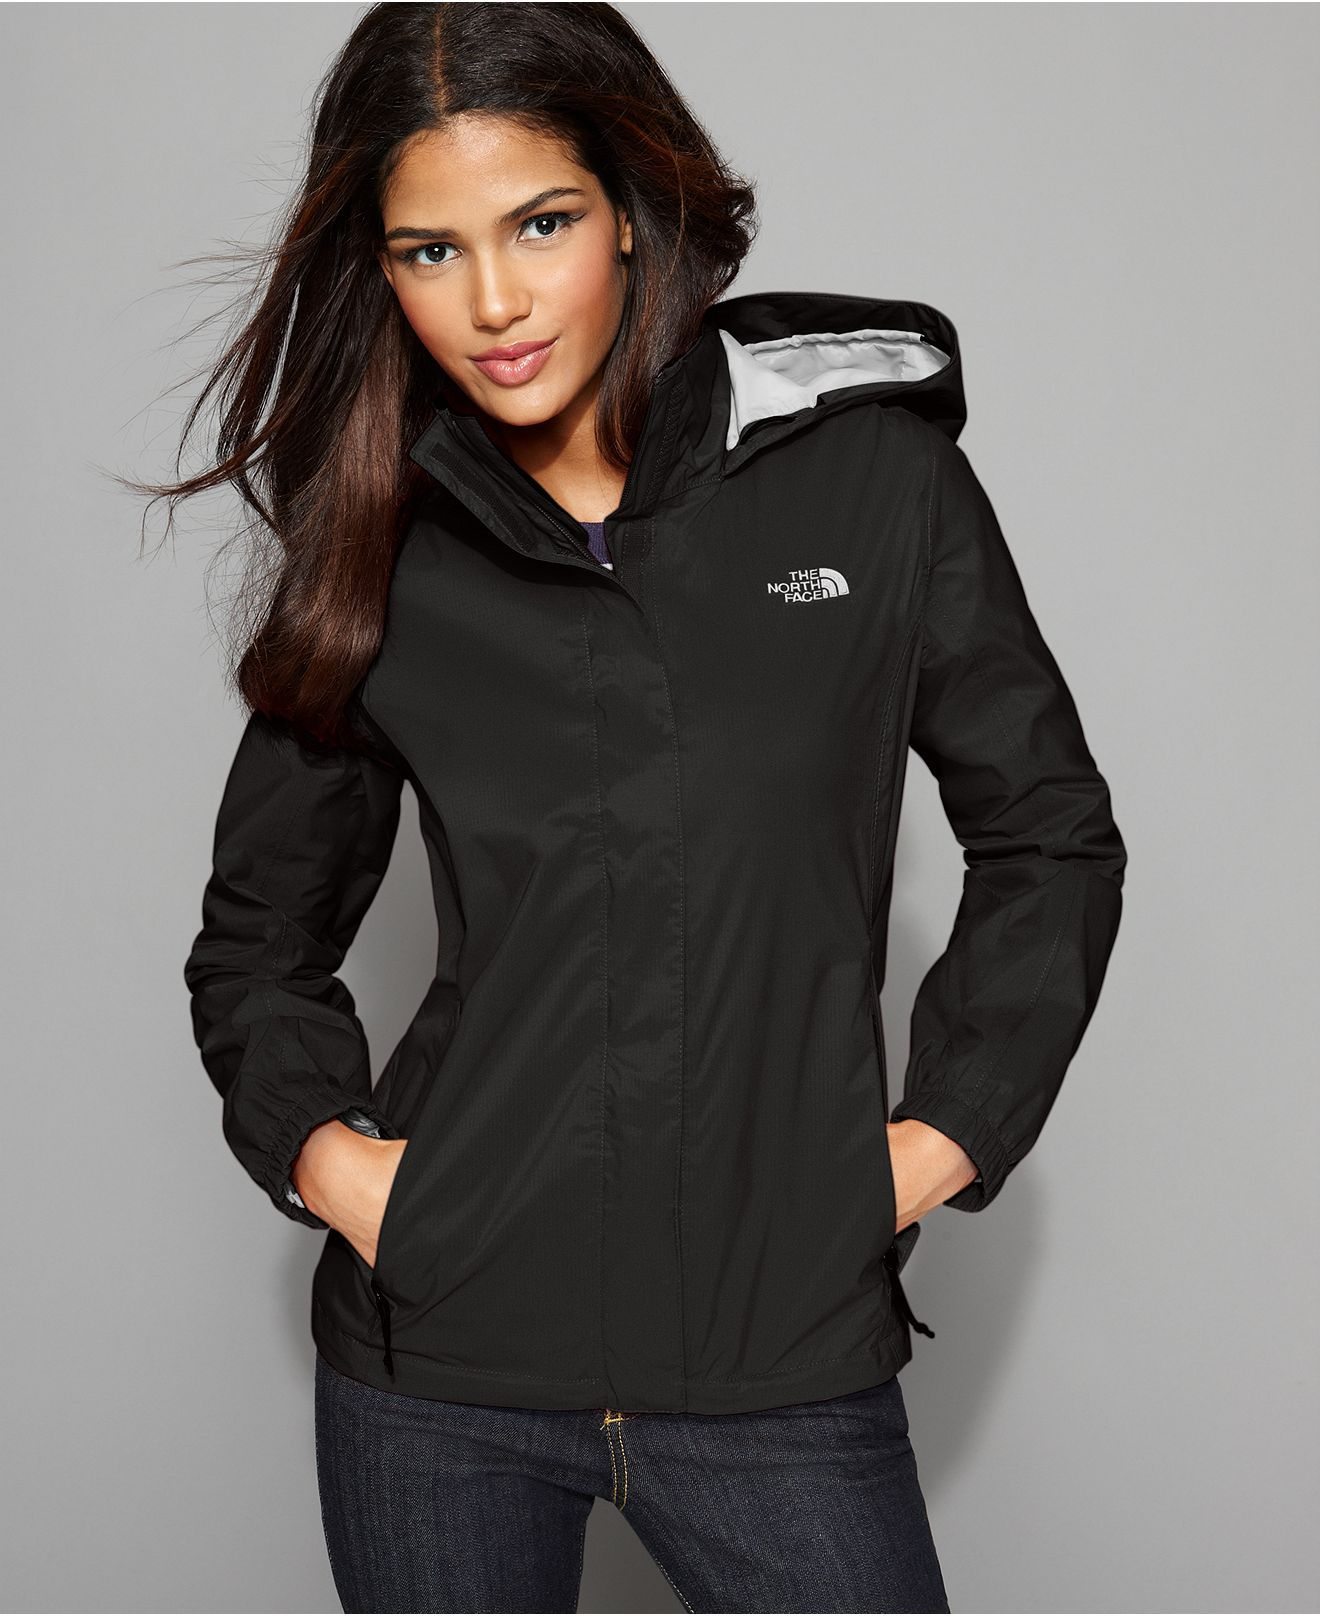 3f0c68df3 The North Face Jacket, Resolve Lightweight Zip Up Rain Jacket ...